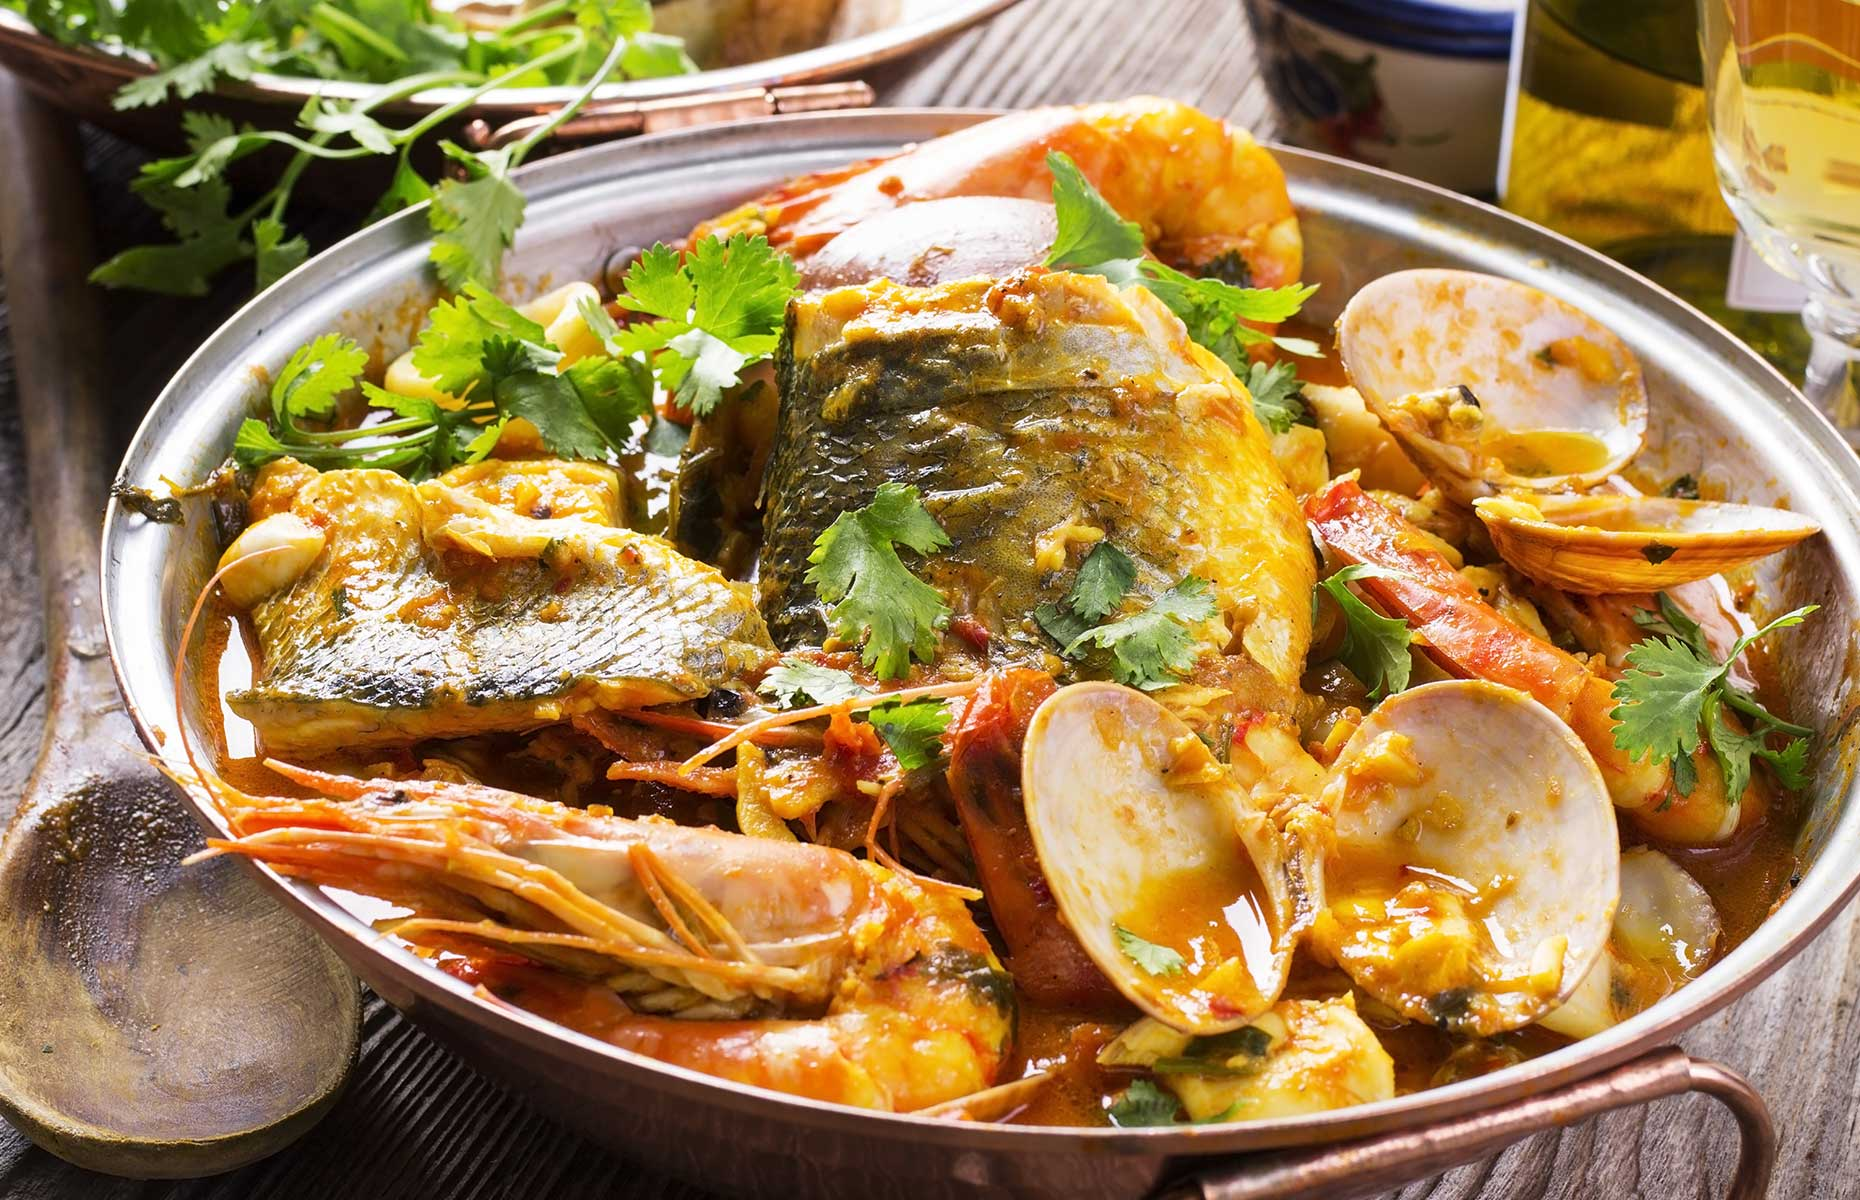 Cataplanas (pork and seafood) is a typically Algarvian dish (Image: hlphoto/Shutterstock)